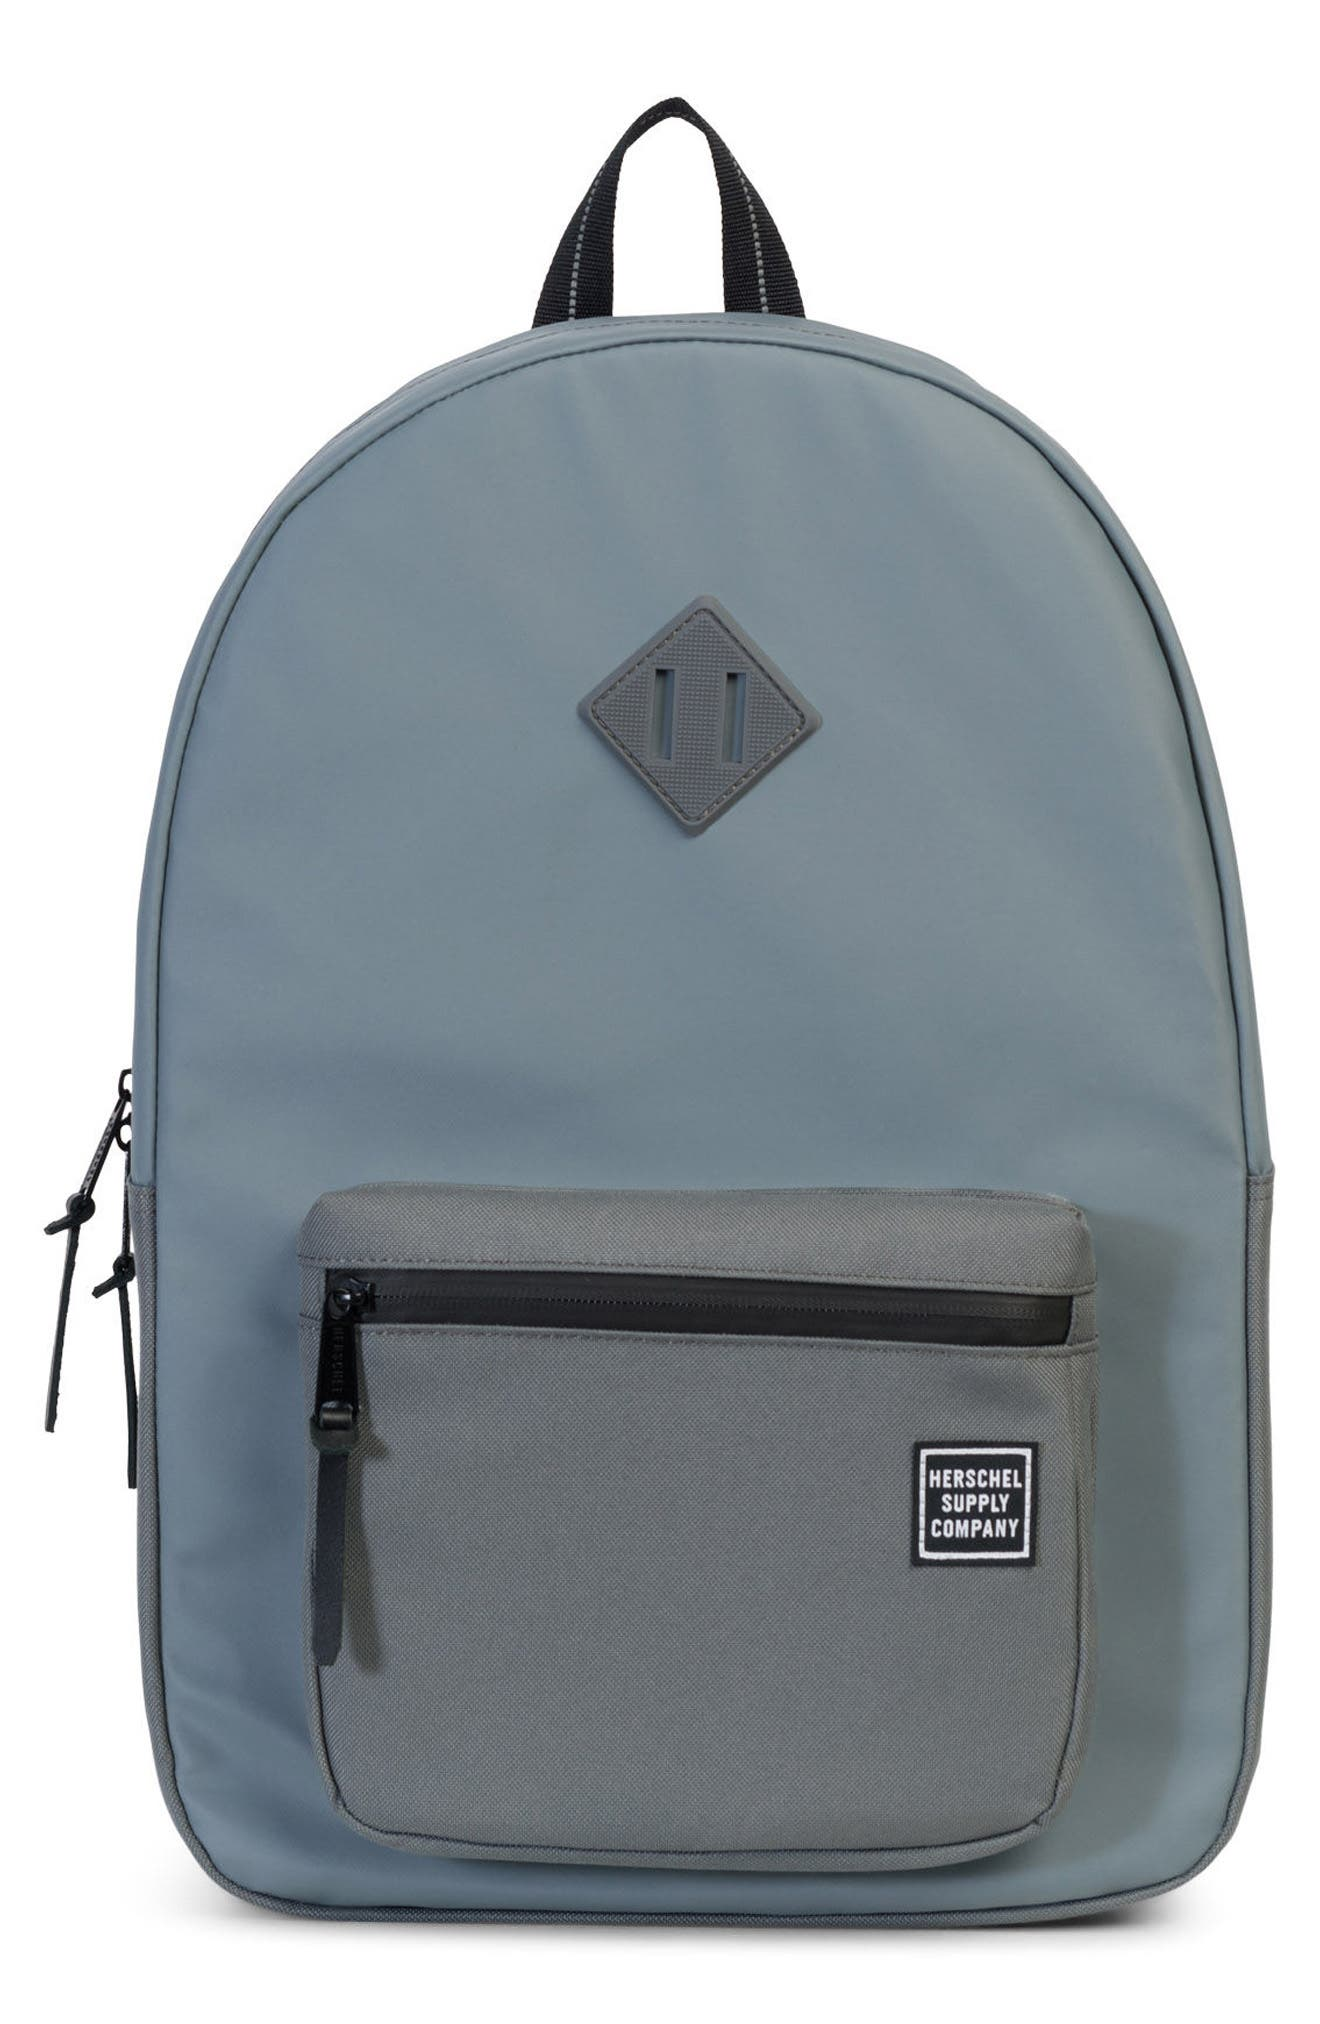 Ruskin Studio Collection Backpack,                             Main thumbnail 1, color,                             Quiet Shade